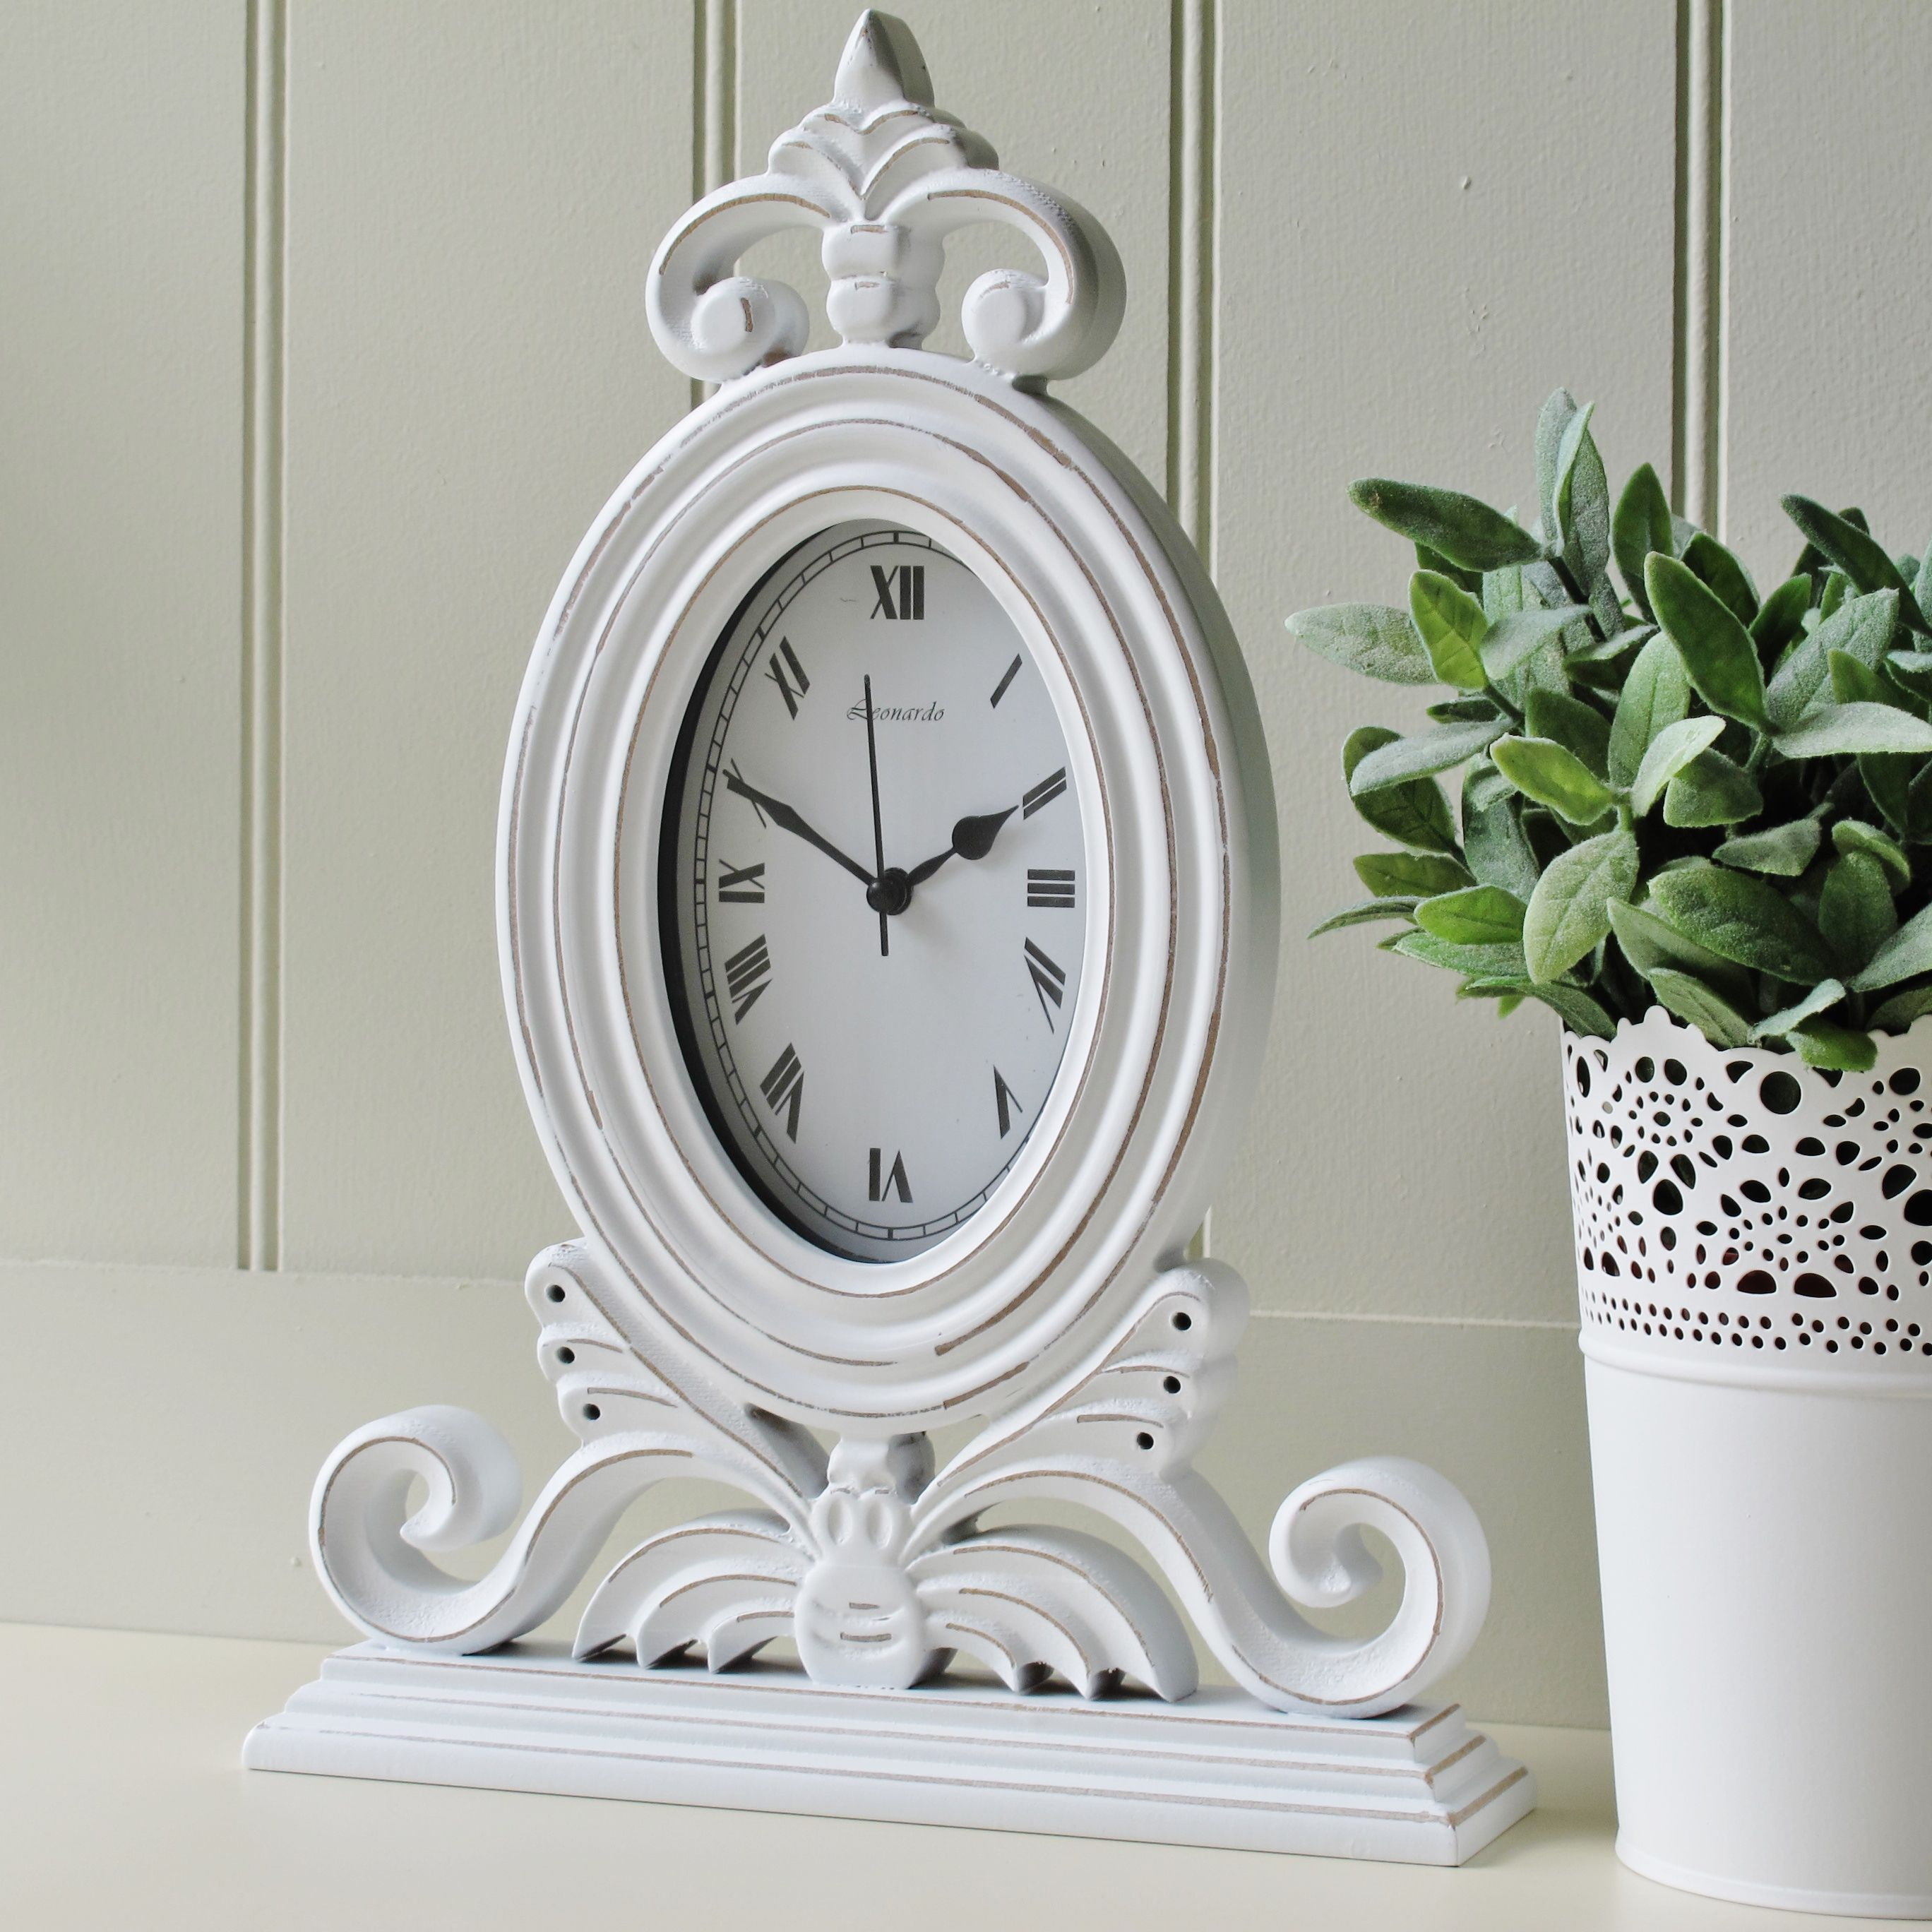 Pin By Irin On Clocks Shabby Chic Mantel White Mantel Clocks Clock